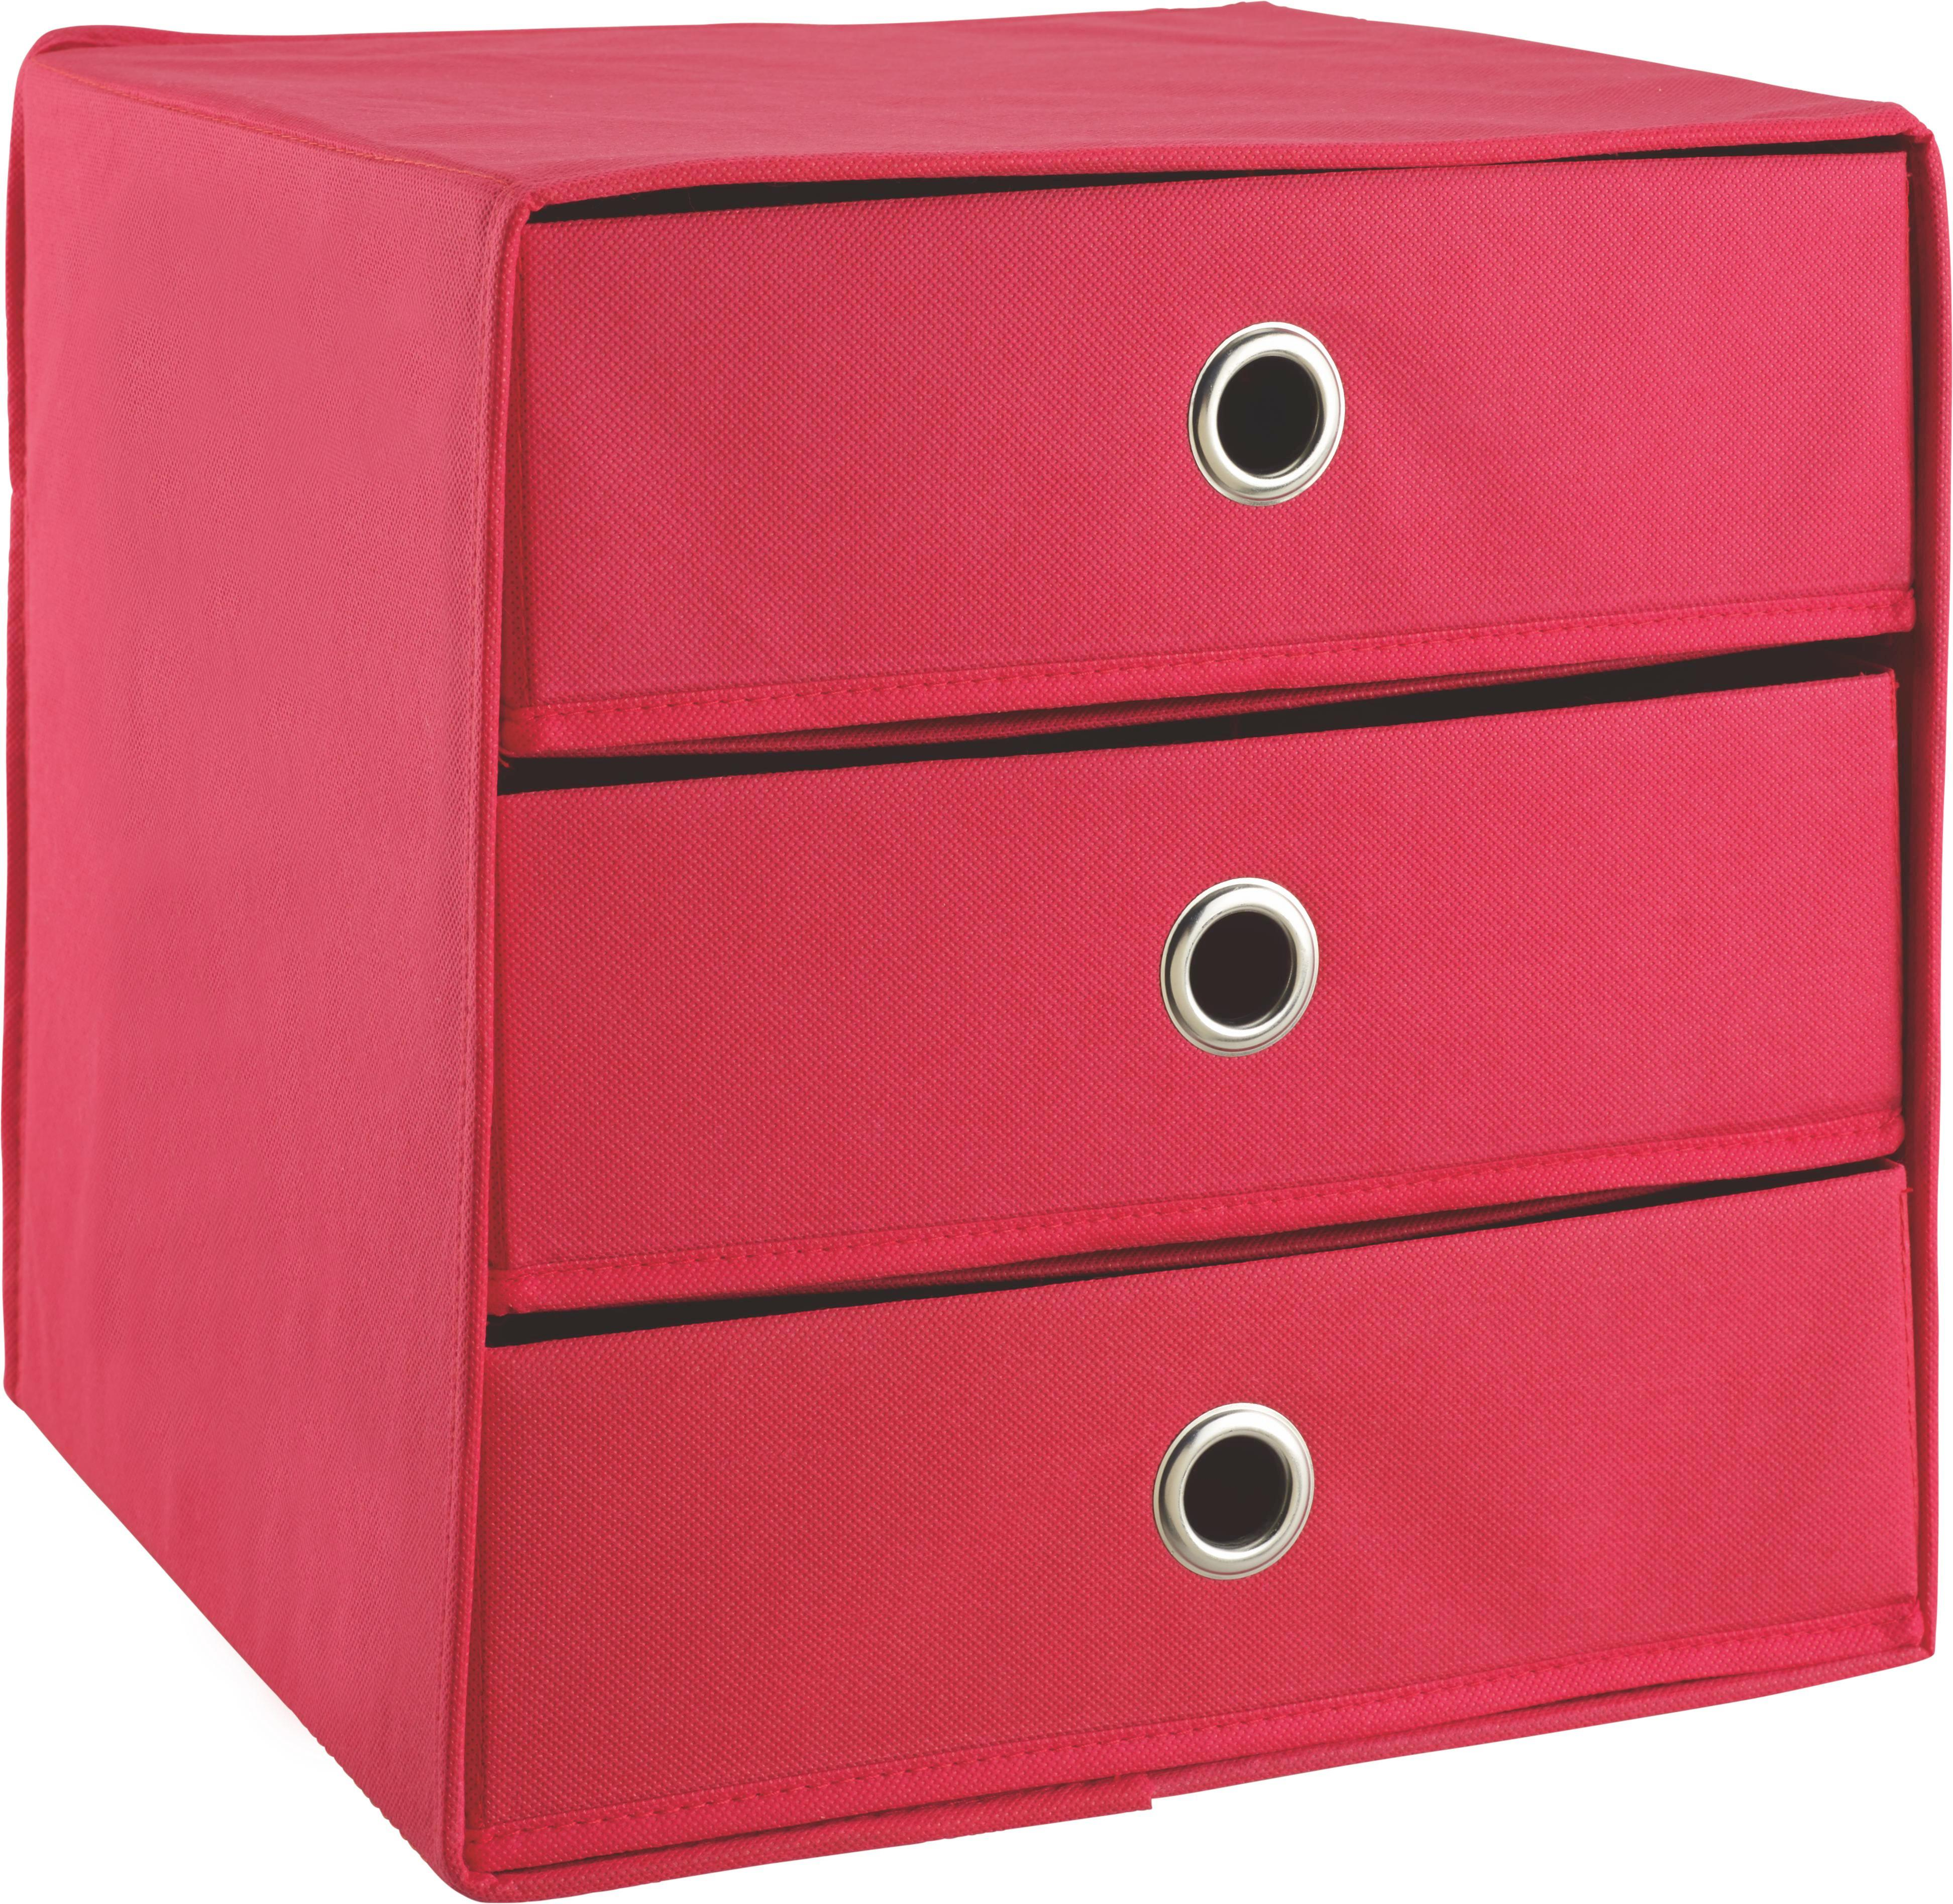 Container in Rot - Rot, Karton/Textil (31,5/32,0/31,5cm) - CARRYHOME